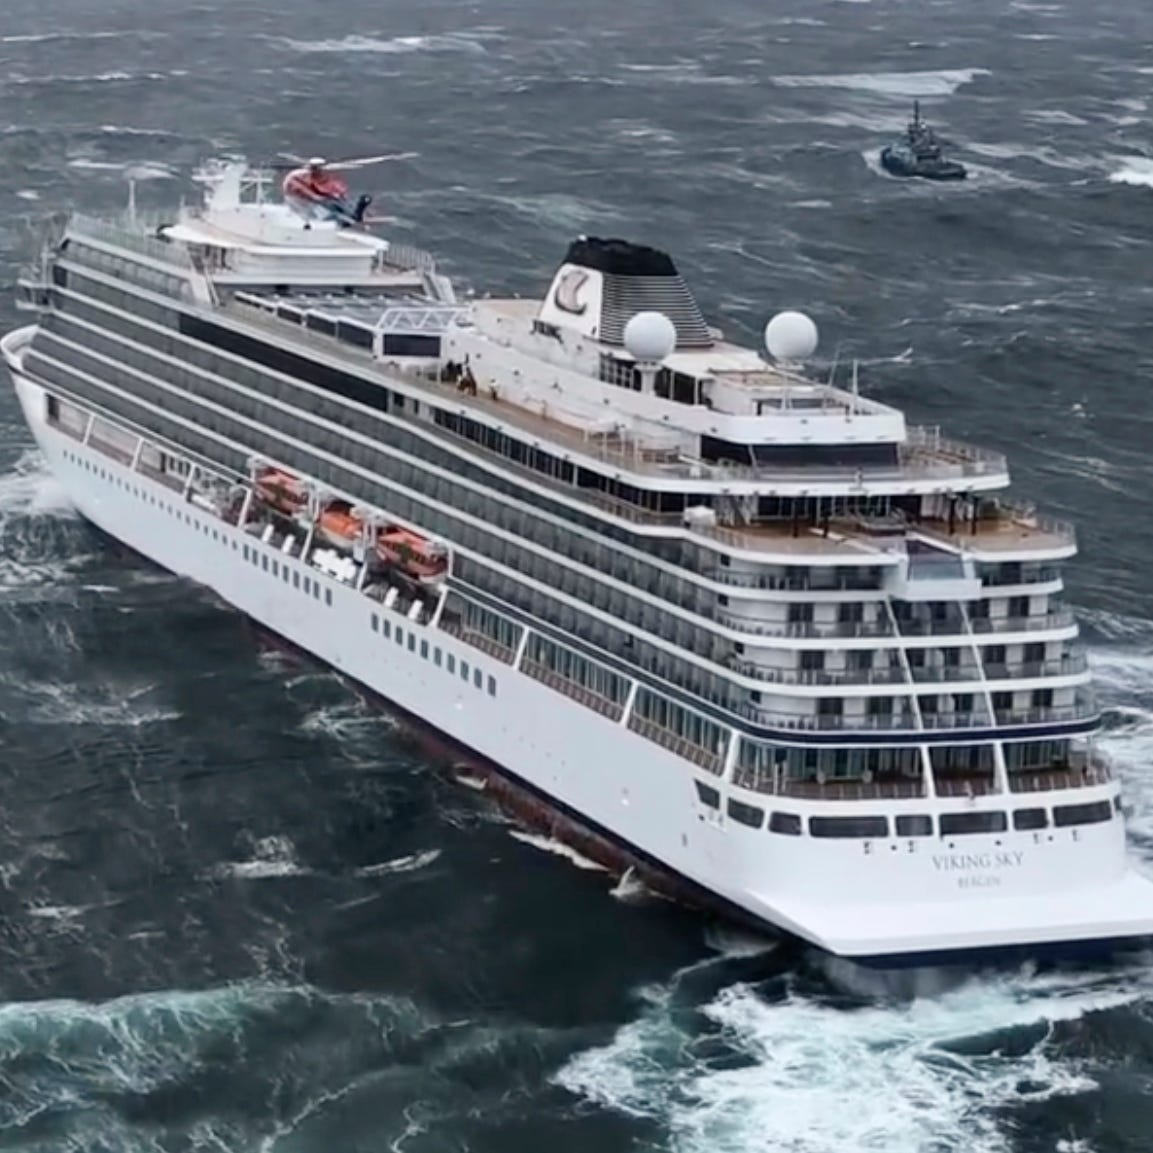 Cruise ship reaches Norway port after punishing storm, harrowing rescues